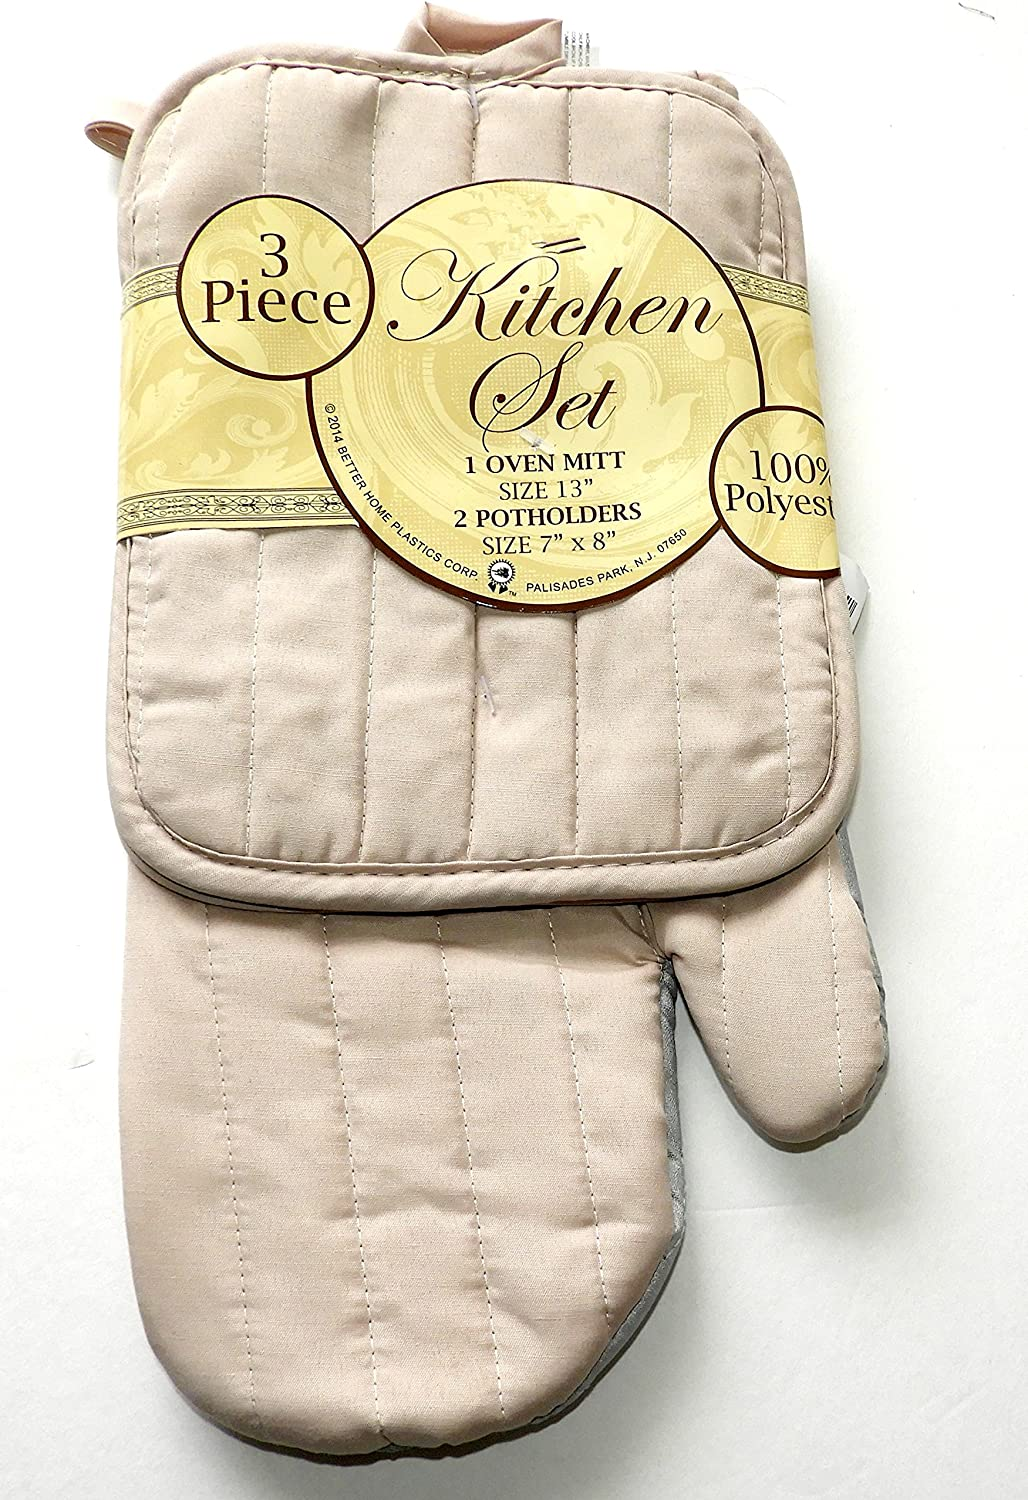 DINY Home & Style 3 Piece Oven Mitt and 2 Potholder Set (Beige)